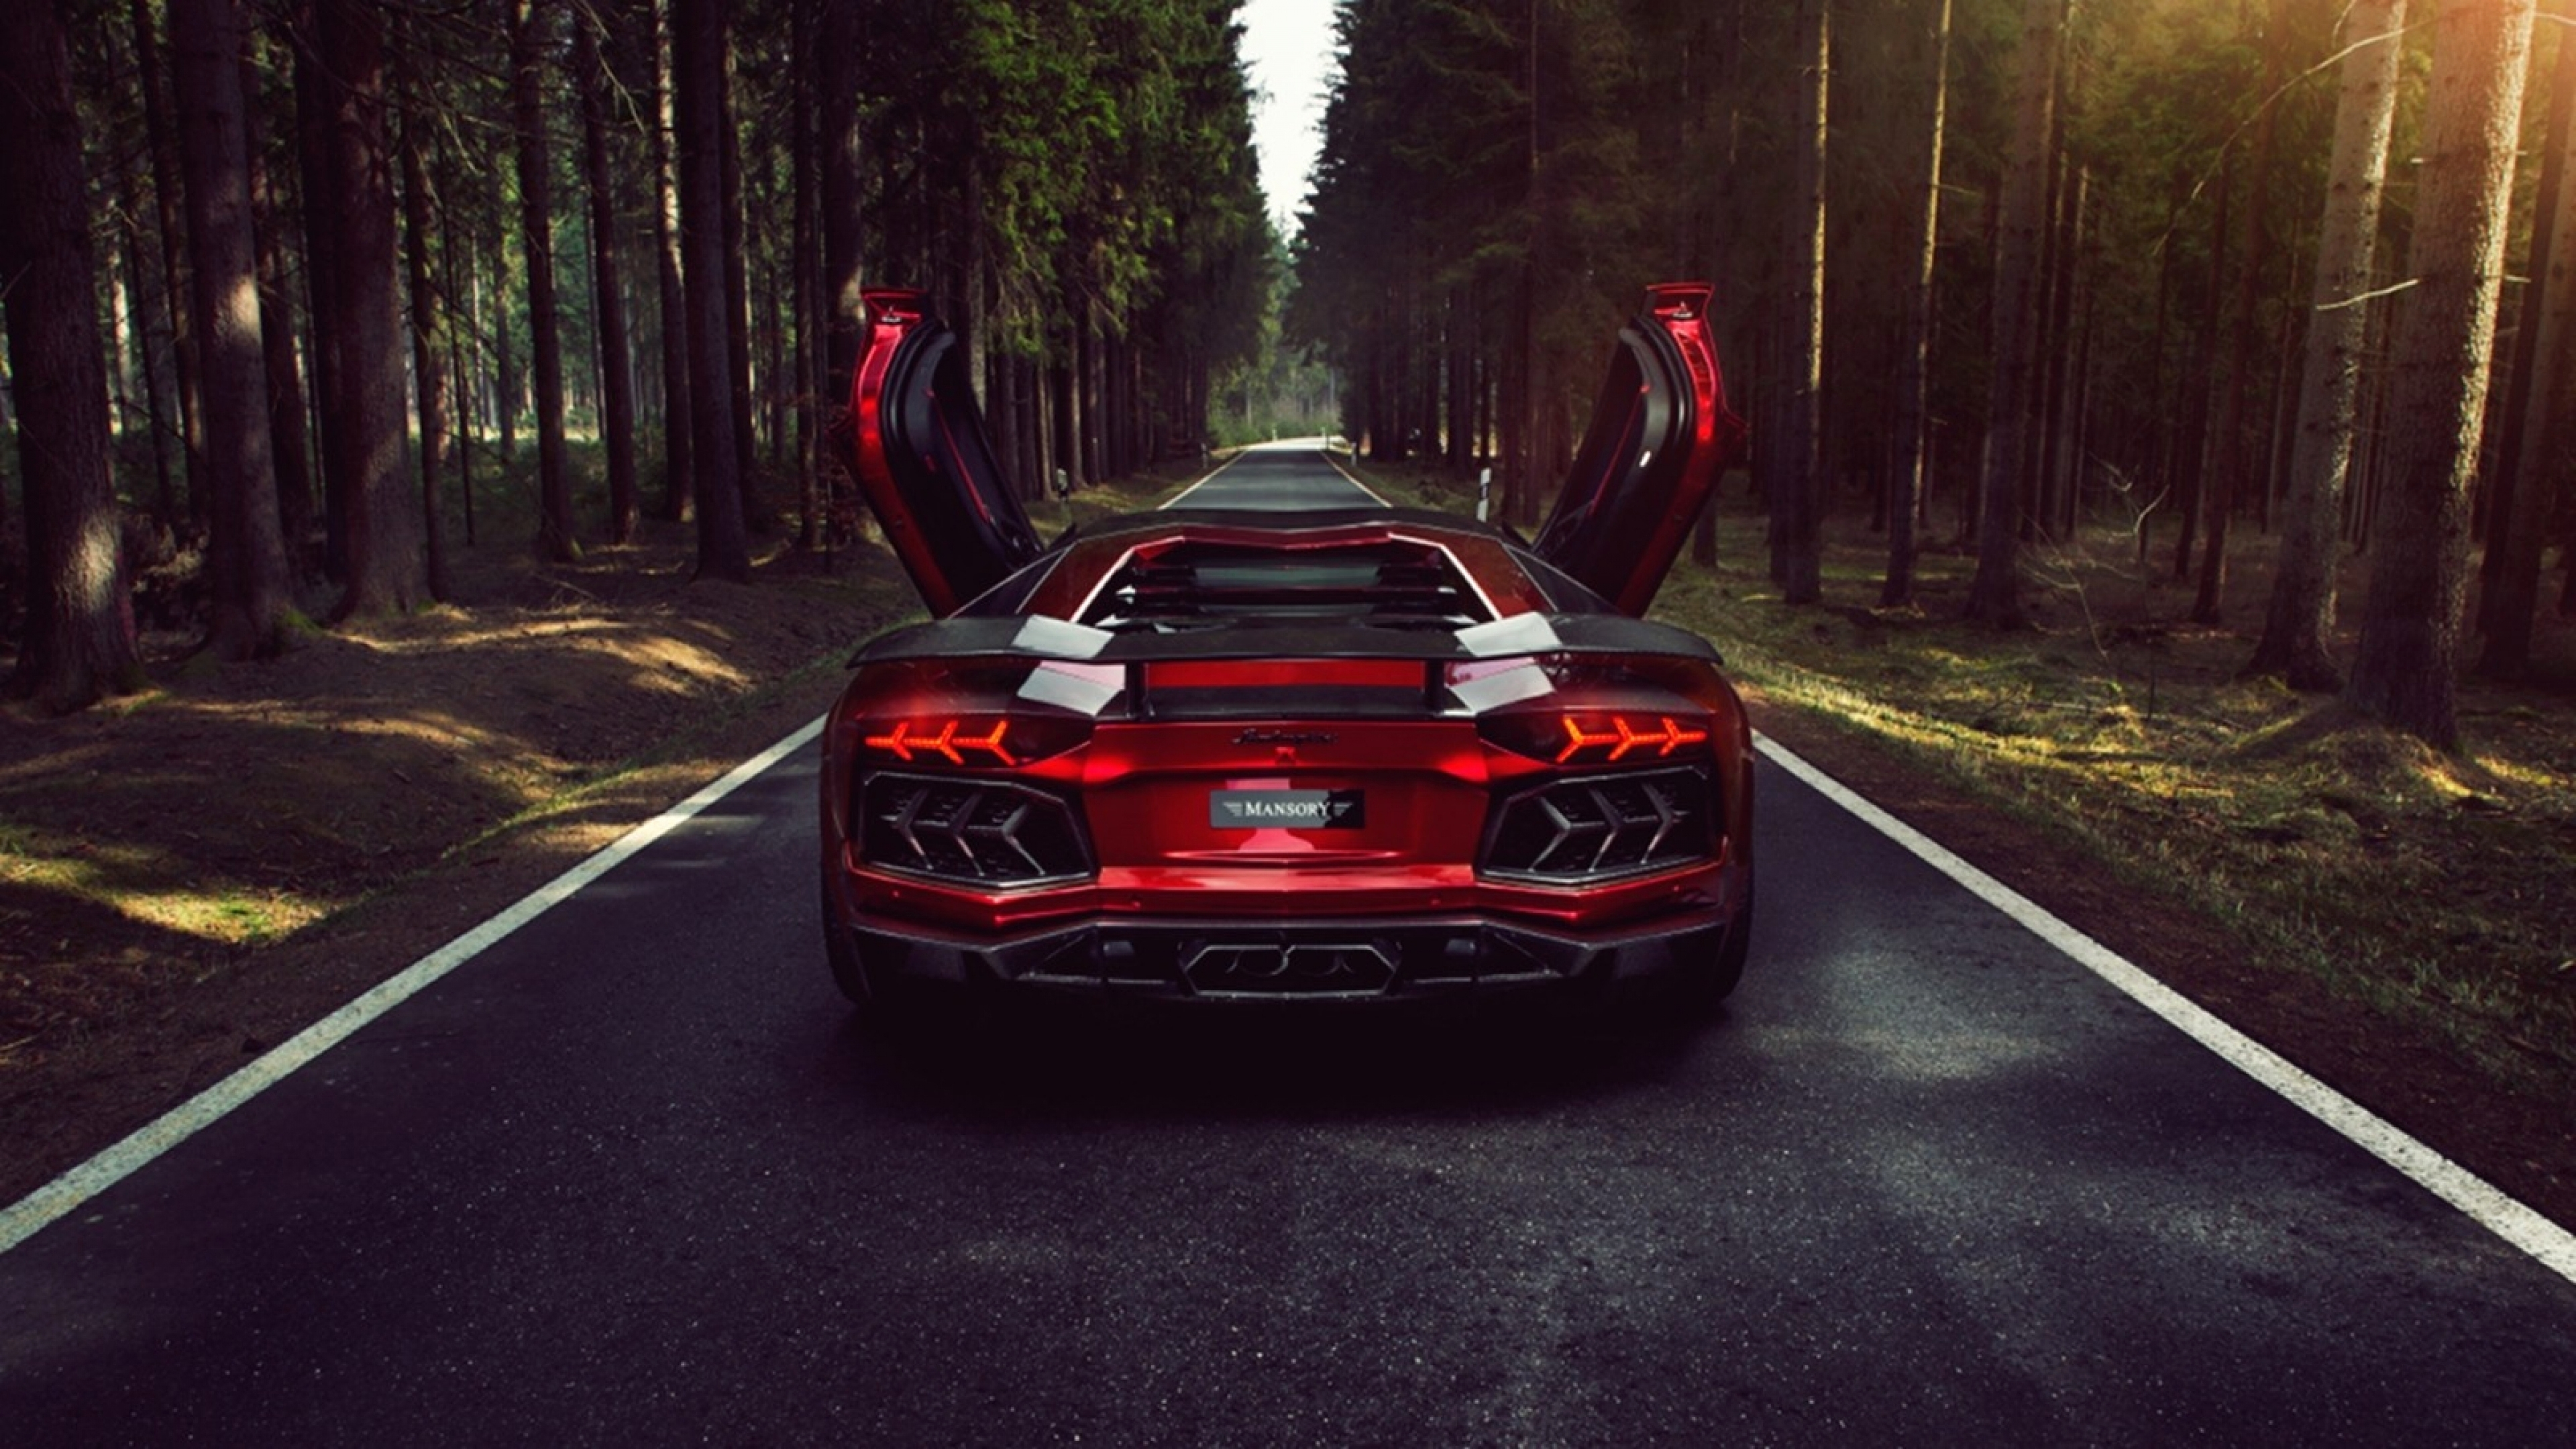 10 Top Exotic Cars Wallpapers Hd FULL HD 1920×1080 For PC ...